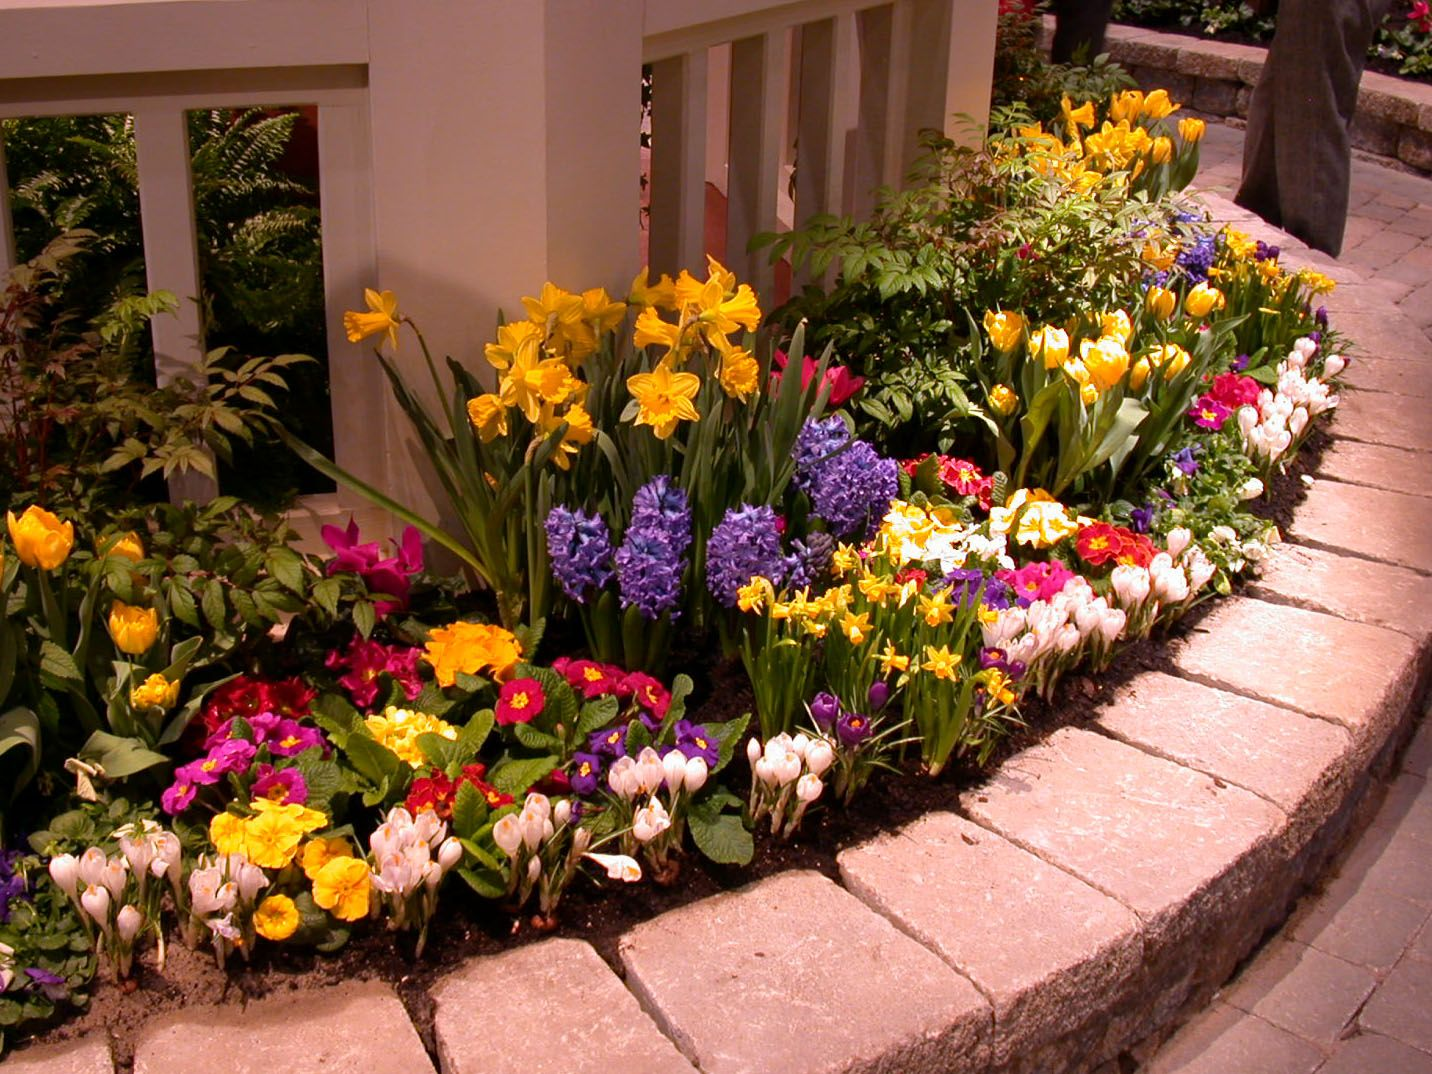 Flower Garden Ideas Garden ideas and garden design